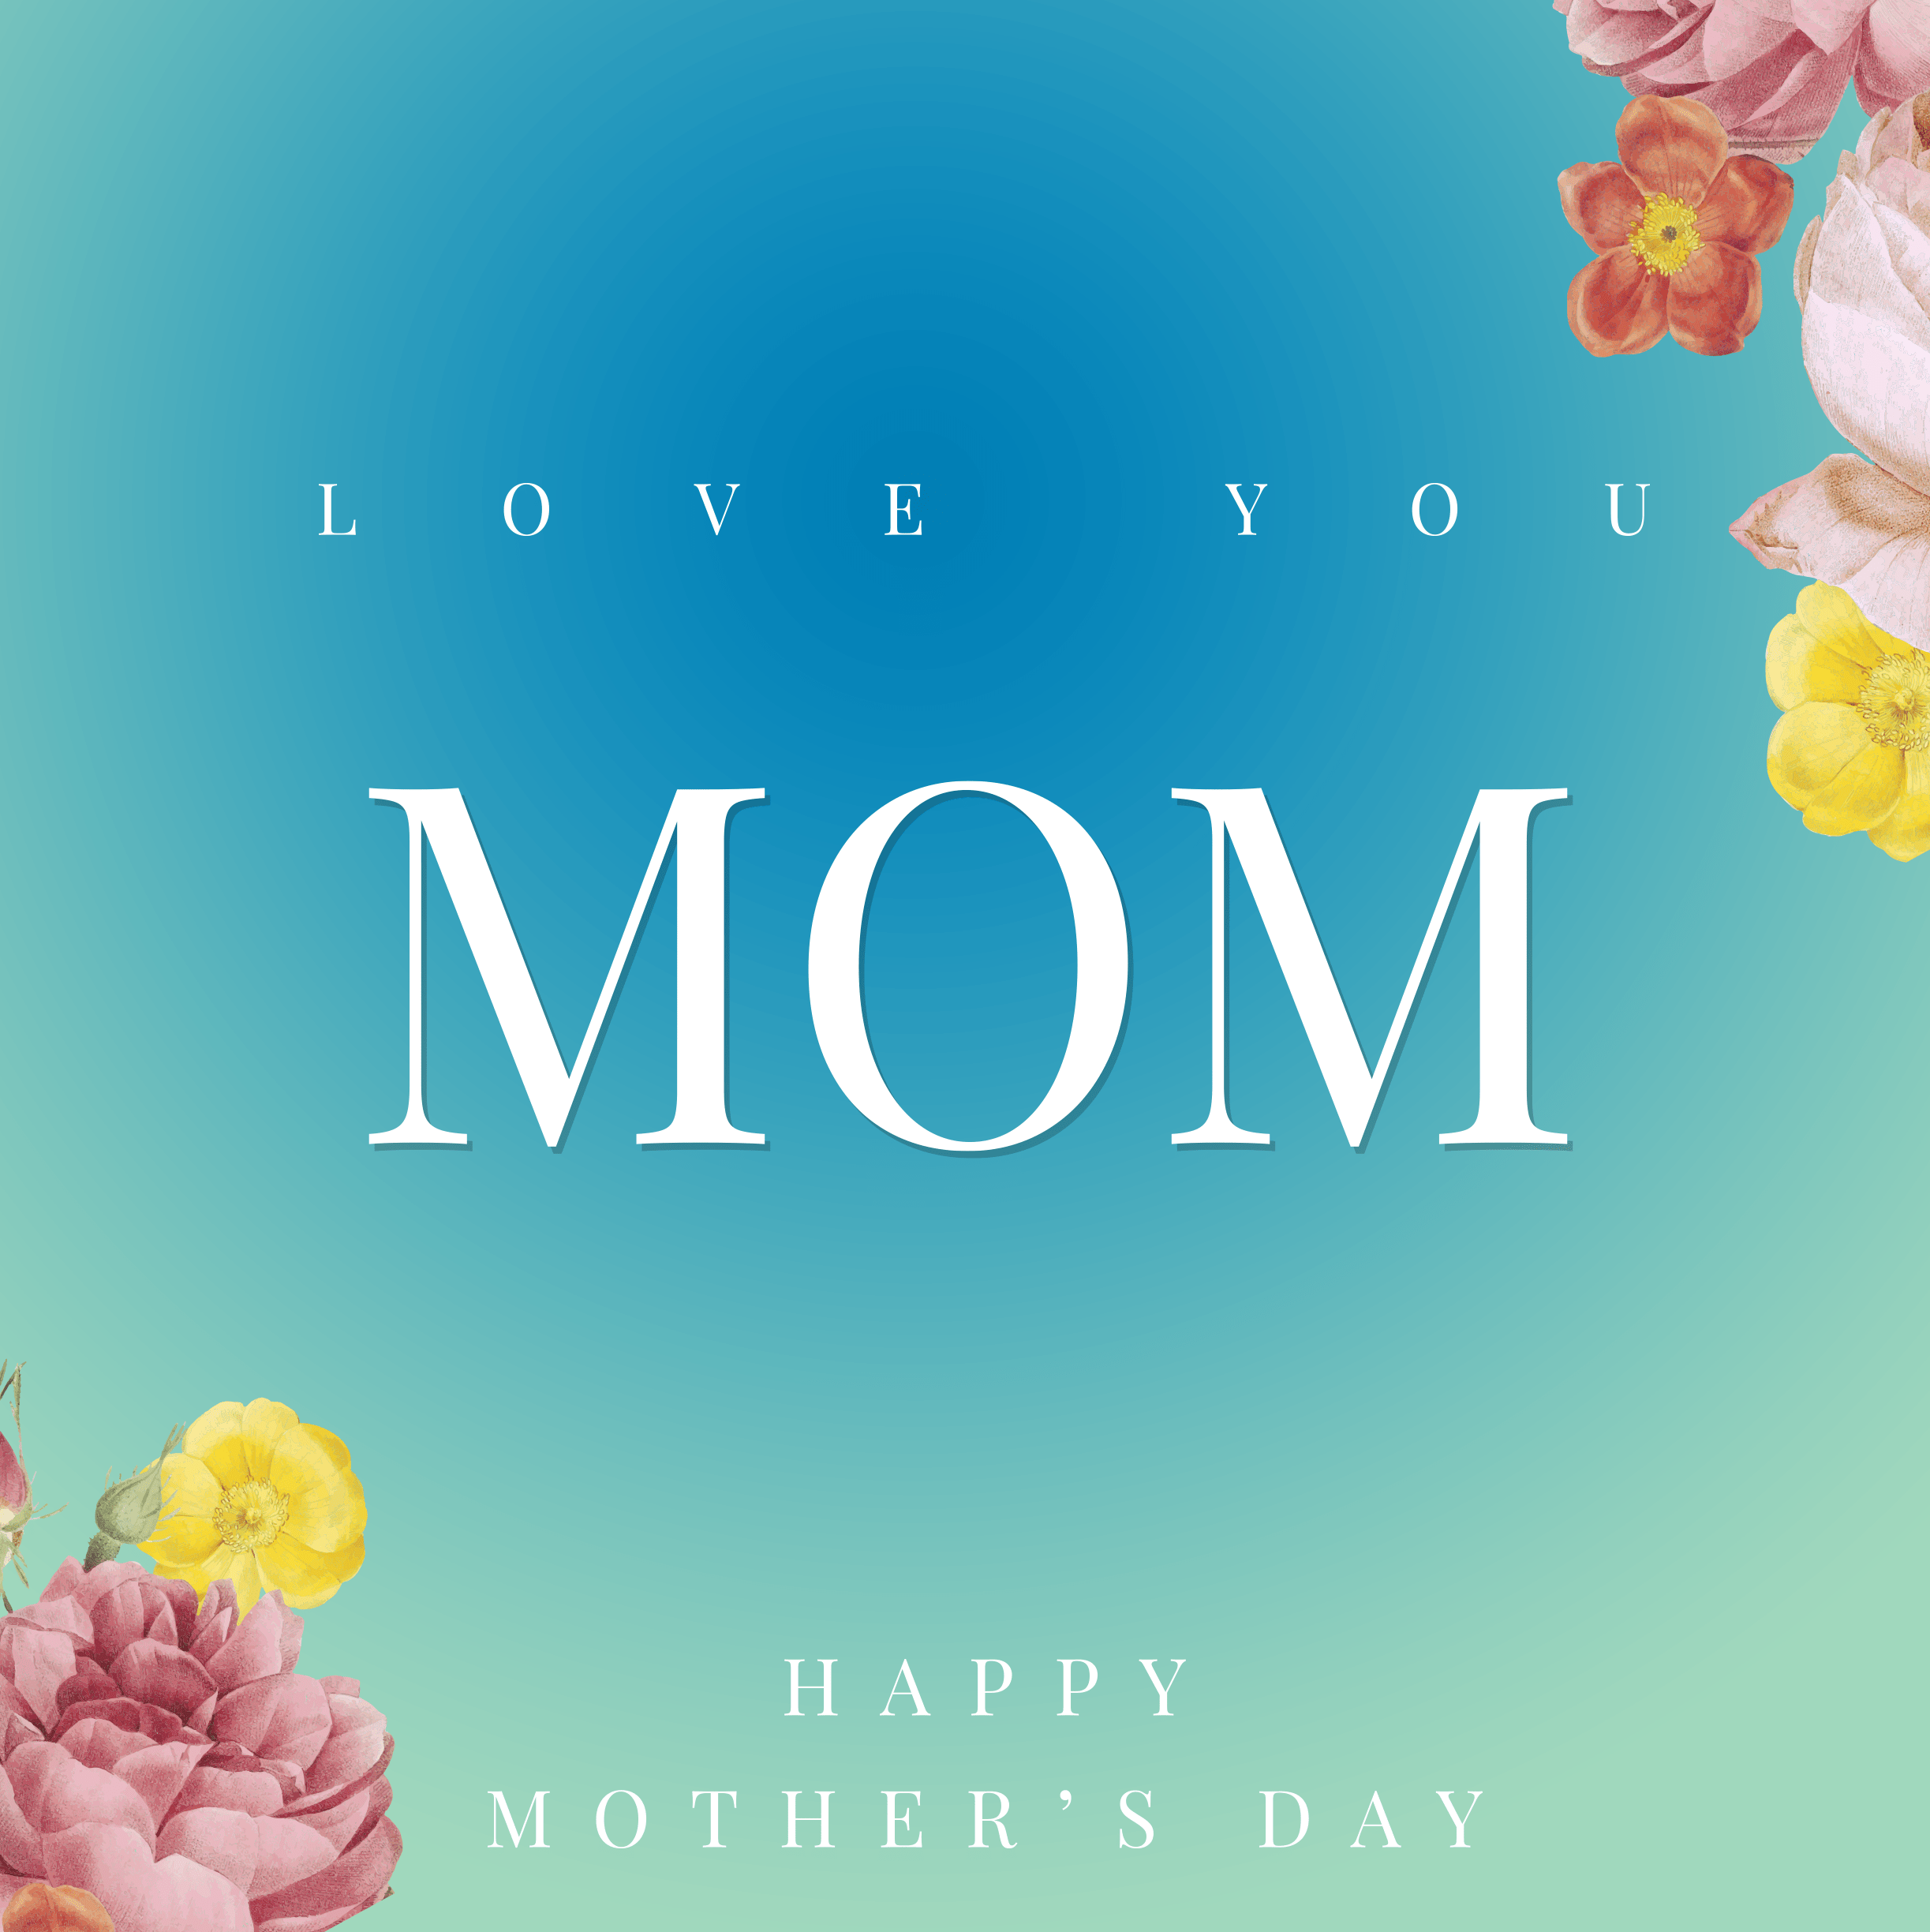 Love you mom happy mother's day 2446 x 2448